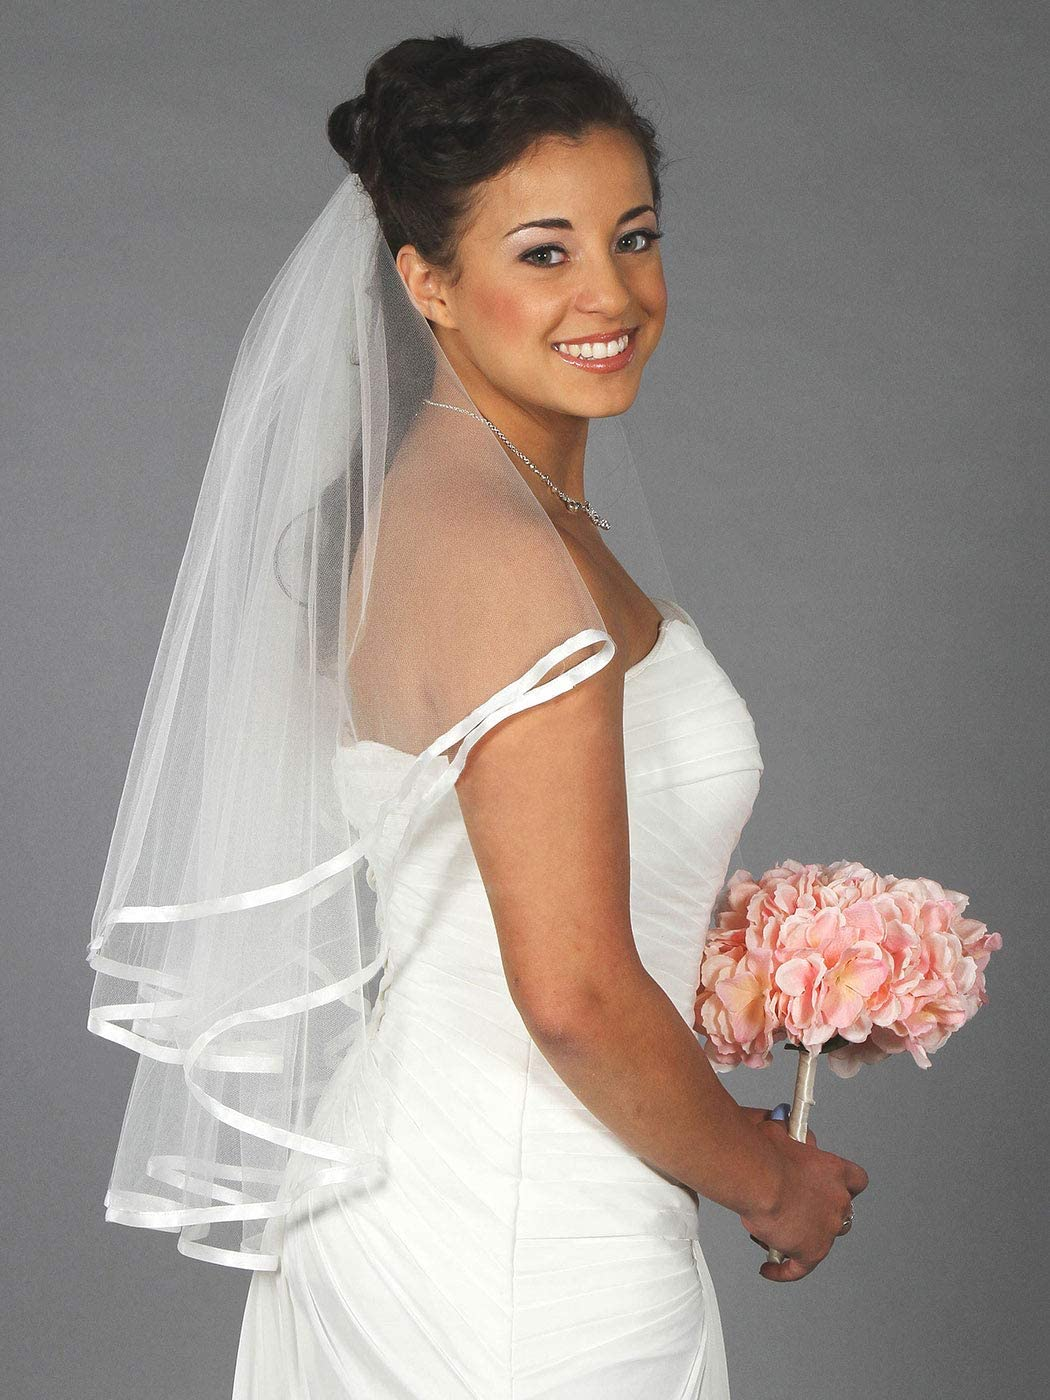 Ivory White 2t Bridal Wedding Veil Tulle with Comb Elbow Cut Edge Tier Satin